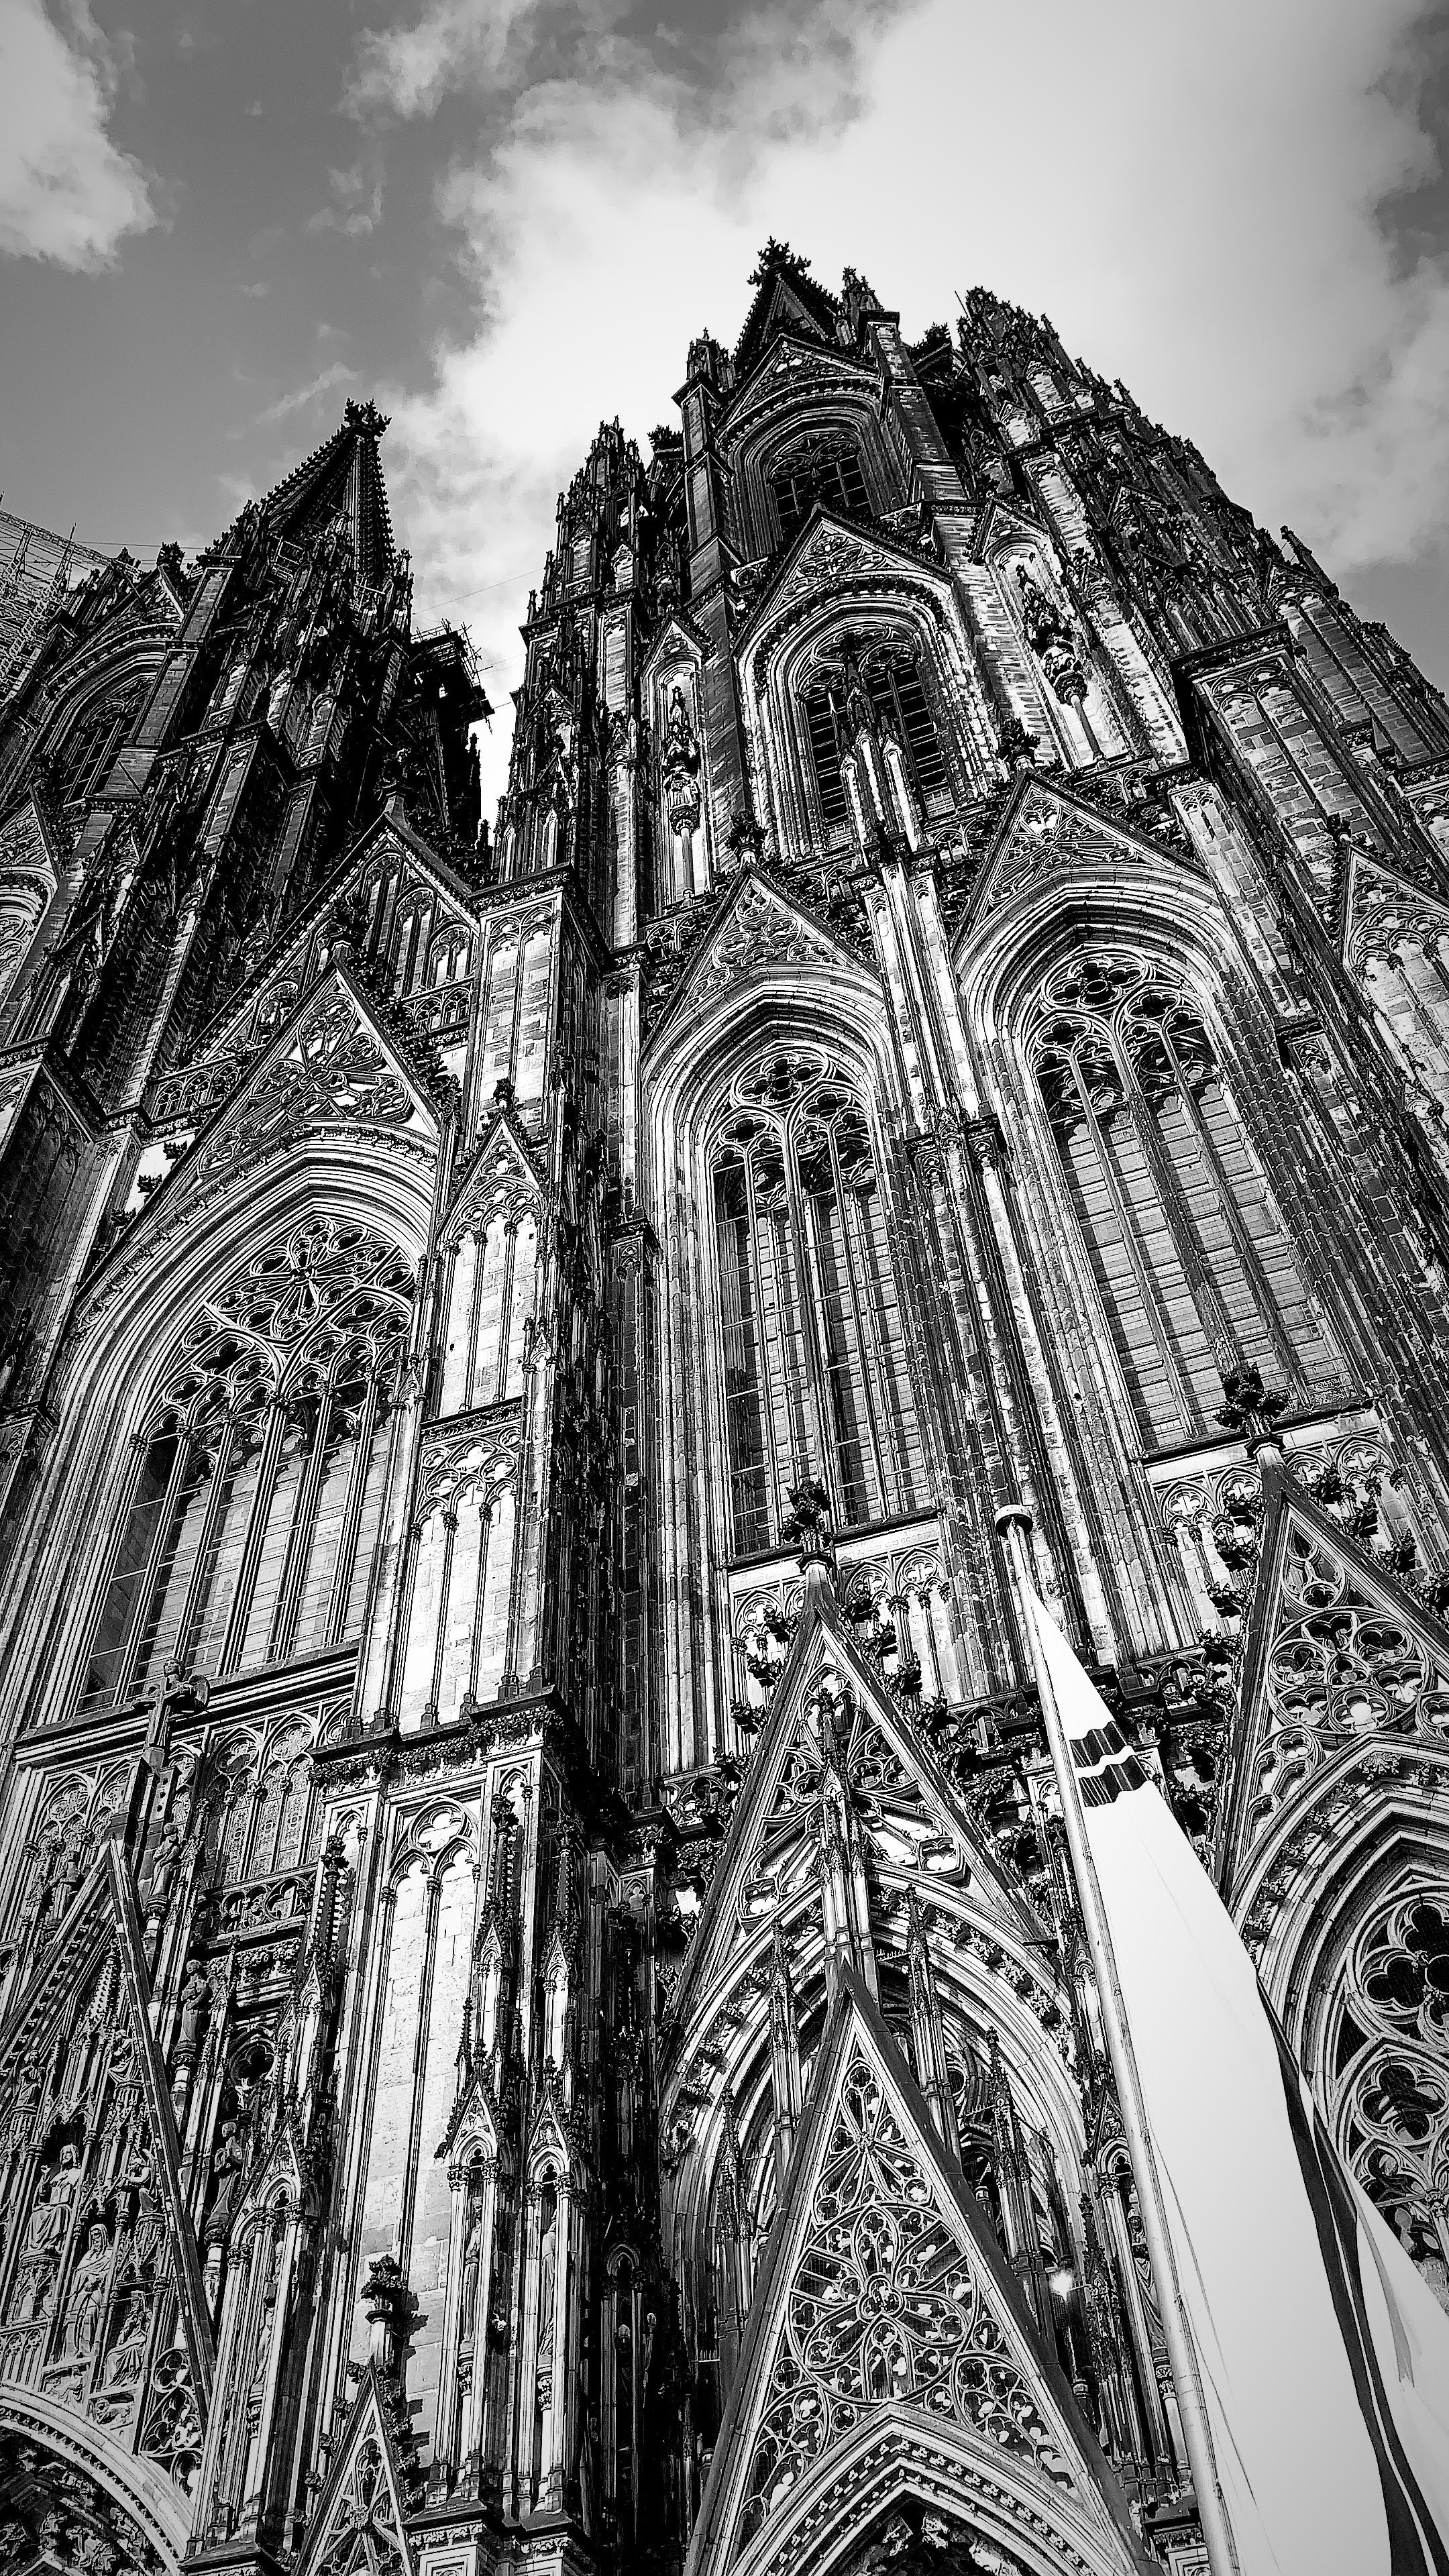 Looking up at cathedral, black and white